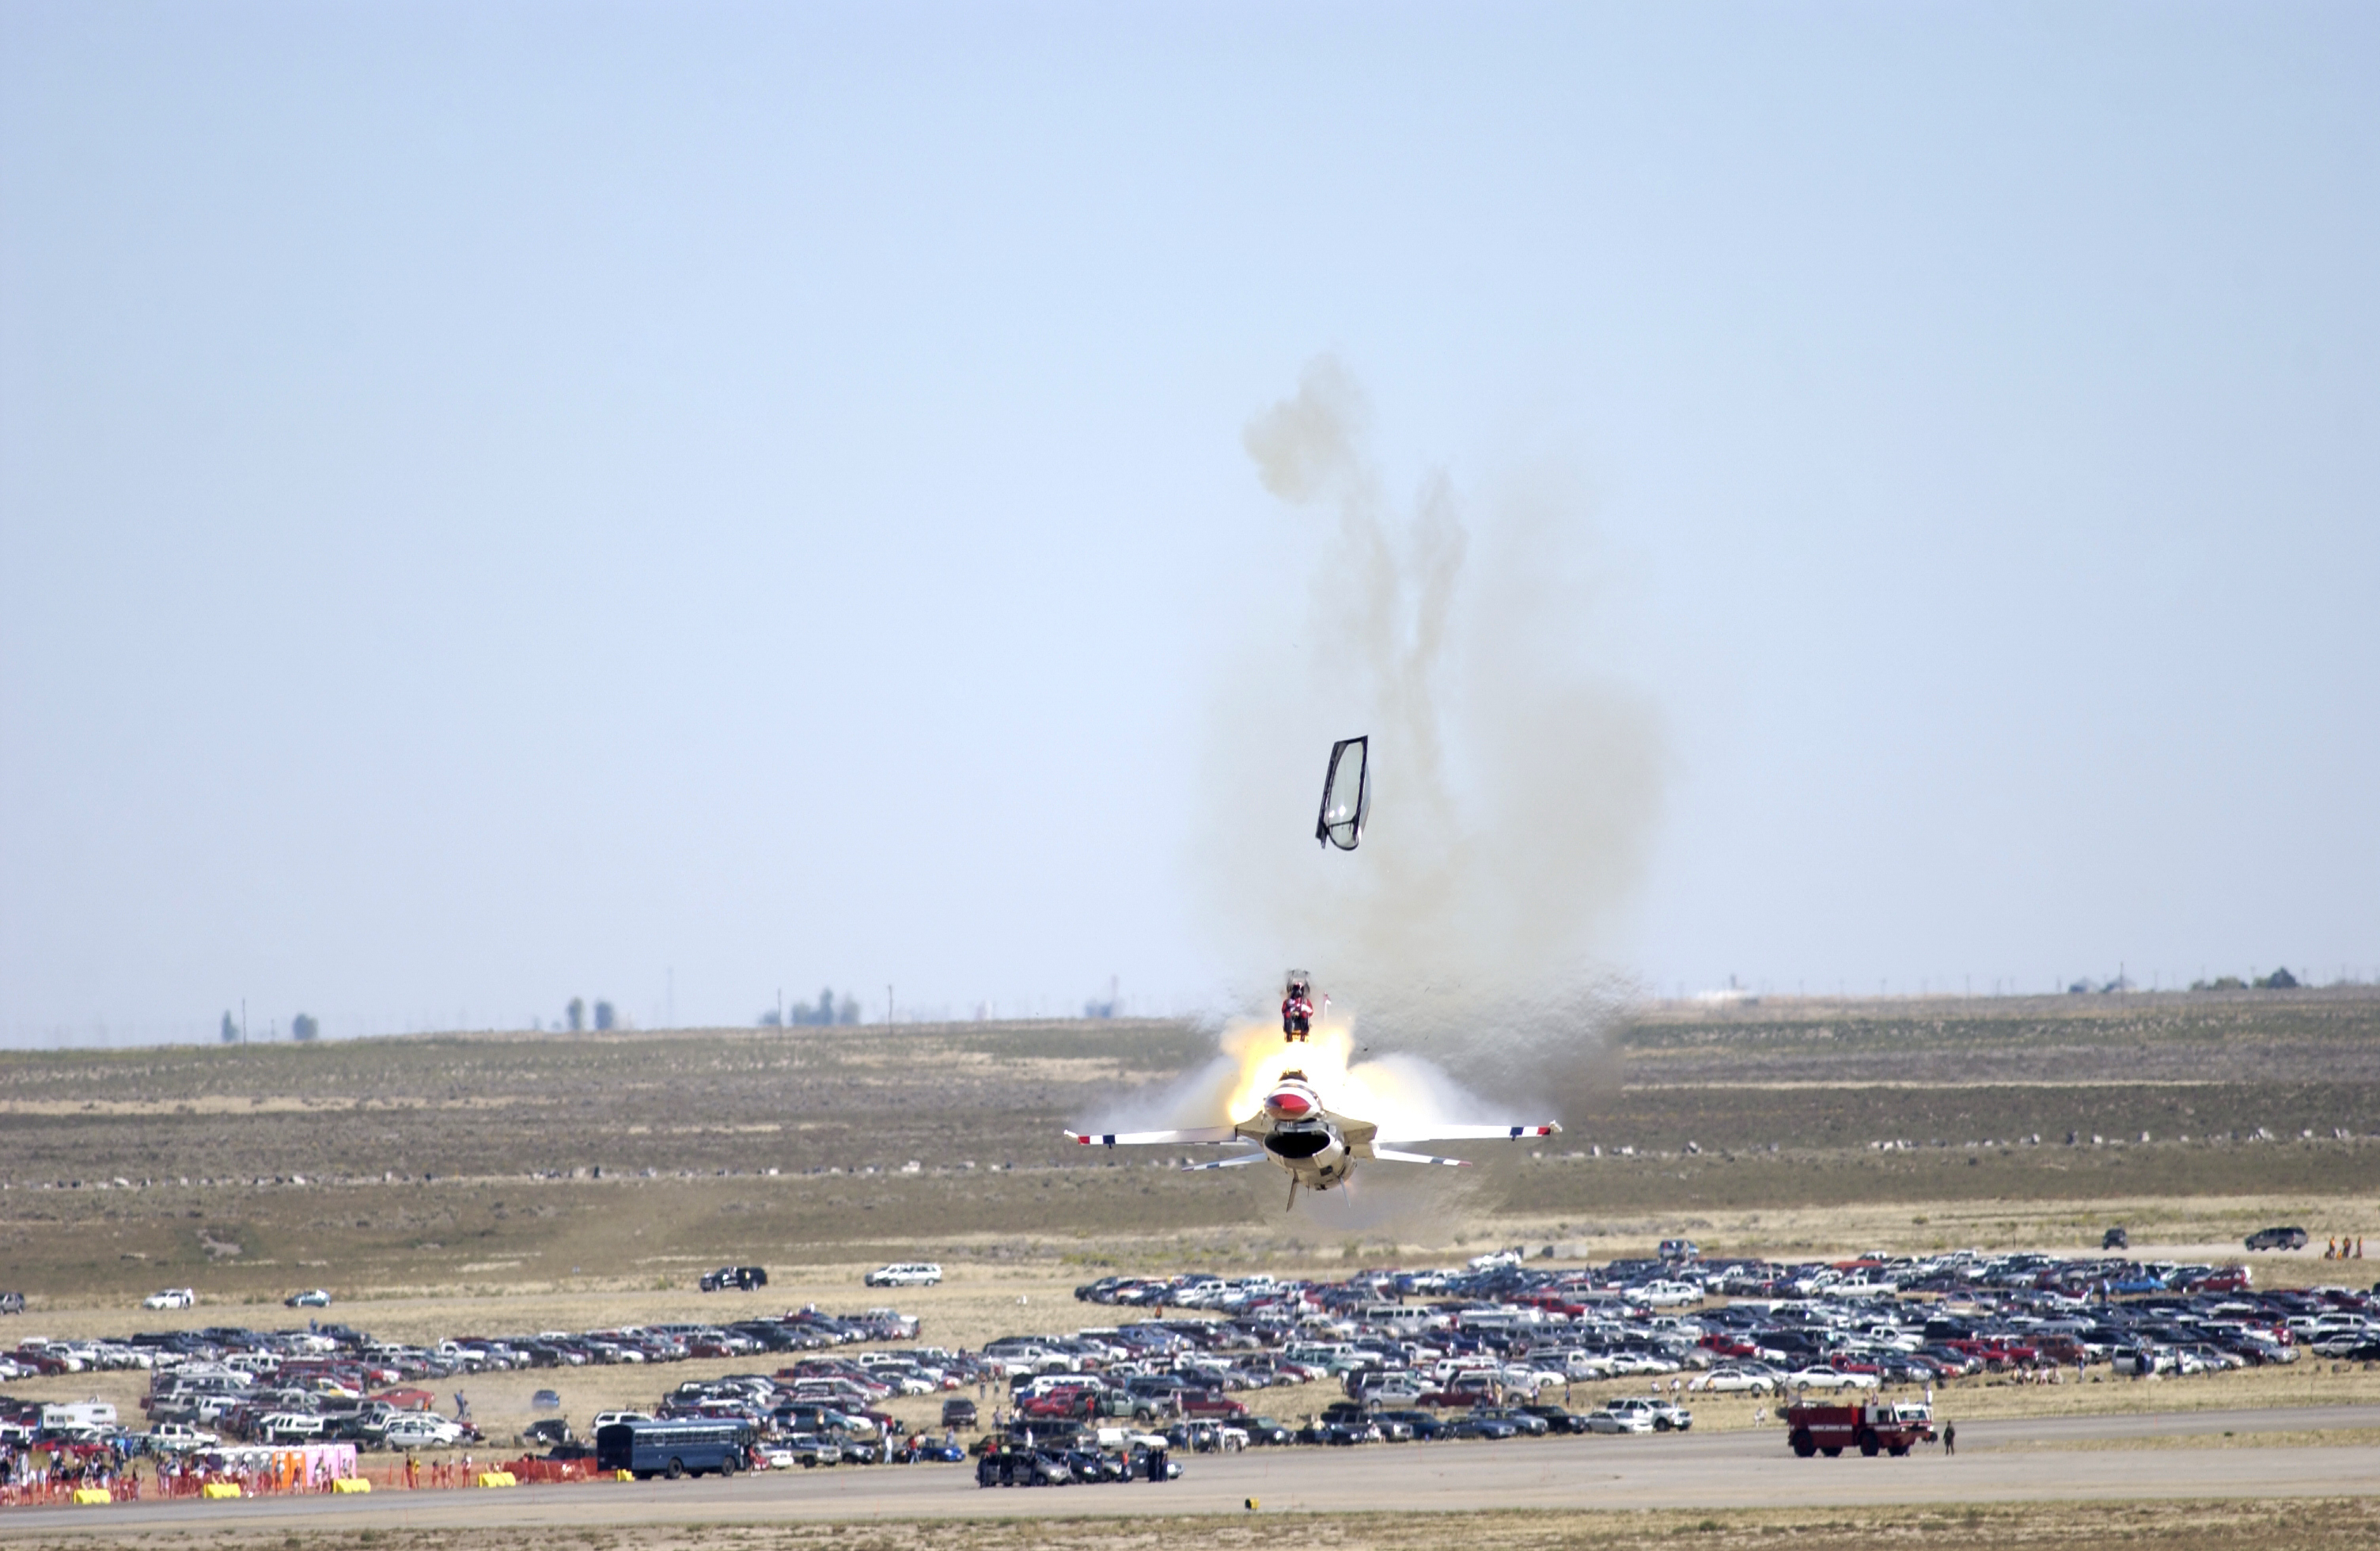 List of air show accidents and incidents in the 21st century - Wikipedia